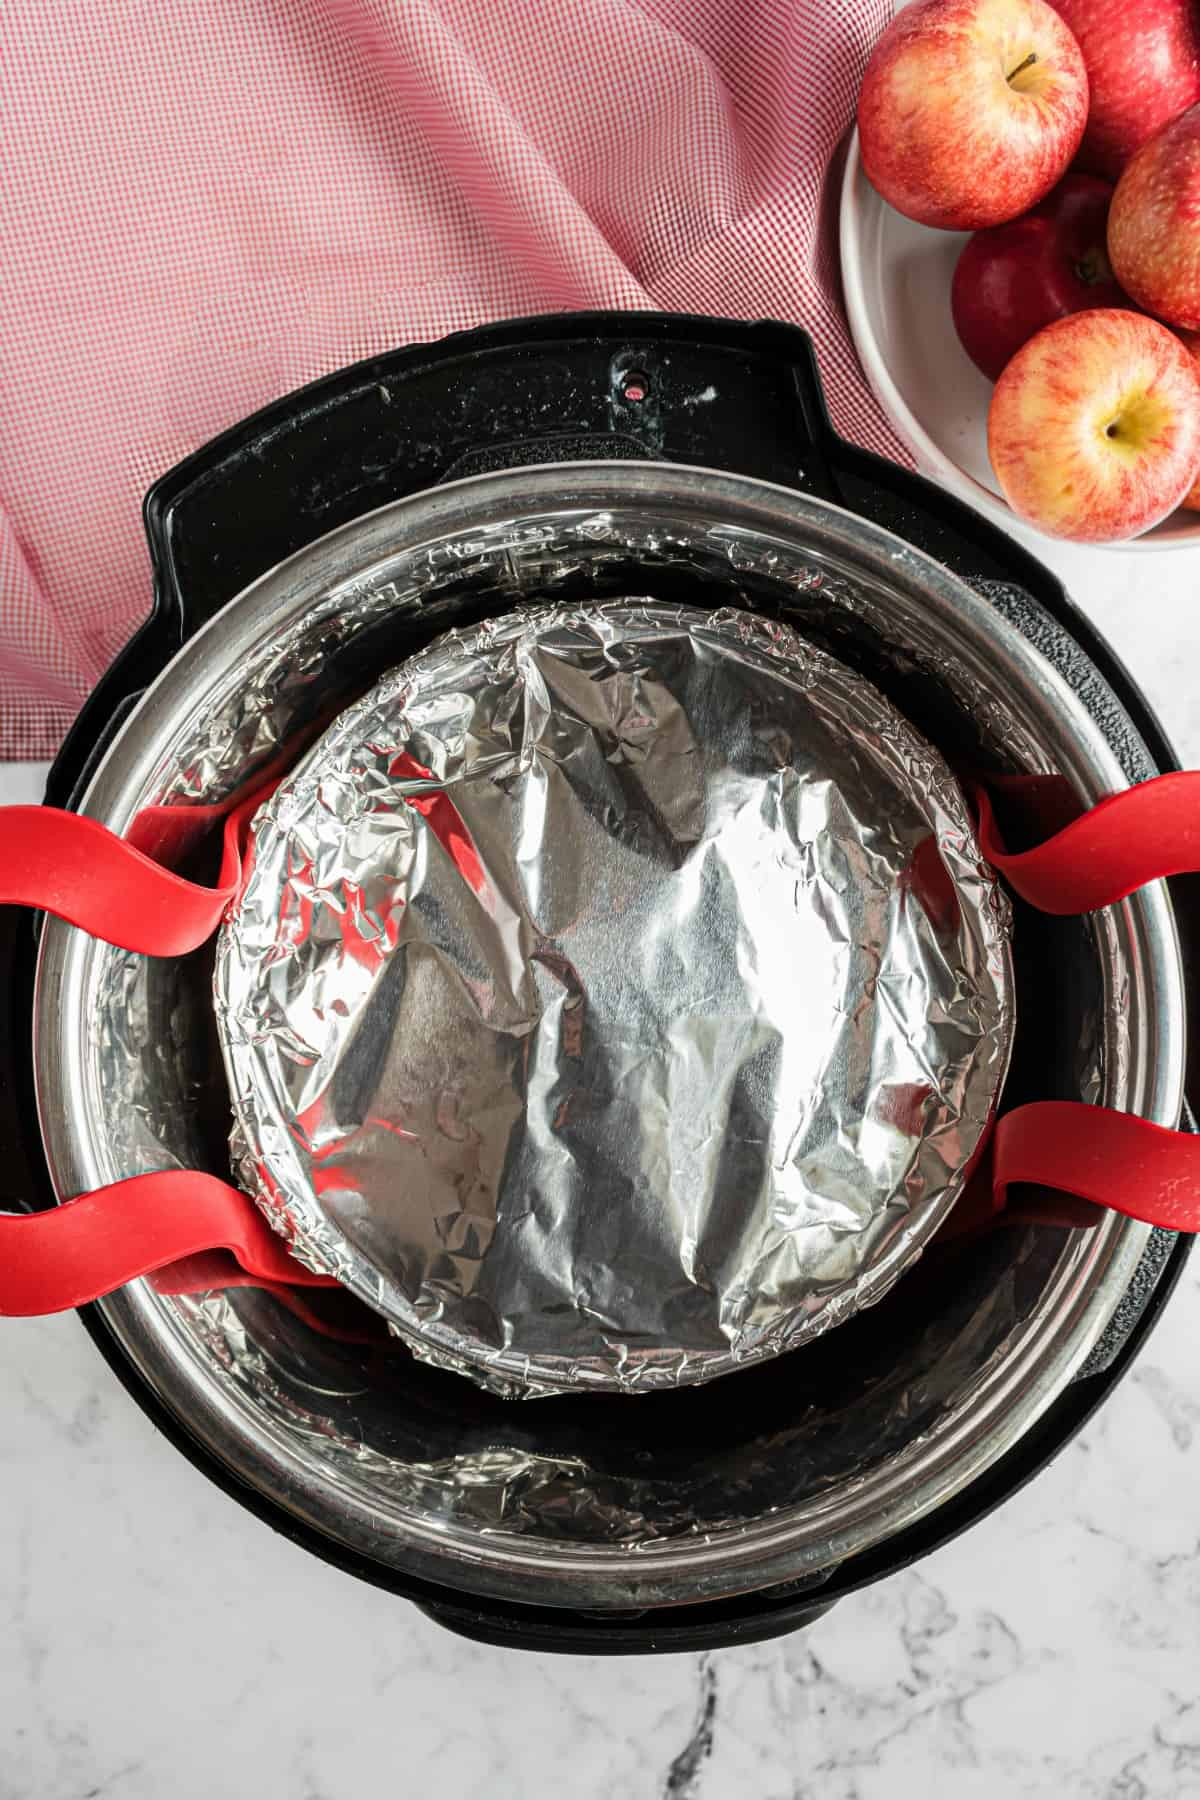 Foil covered dish in instant pot on a sling.